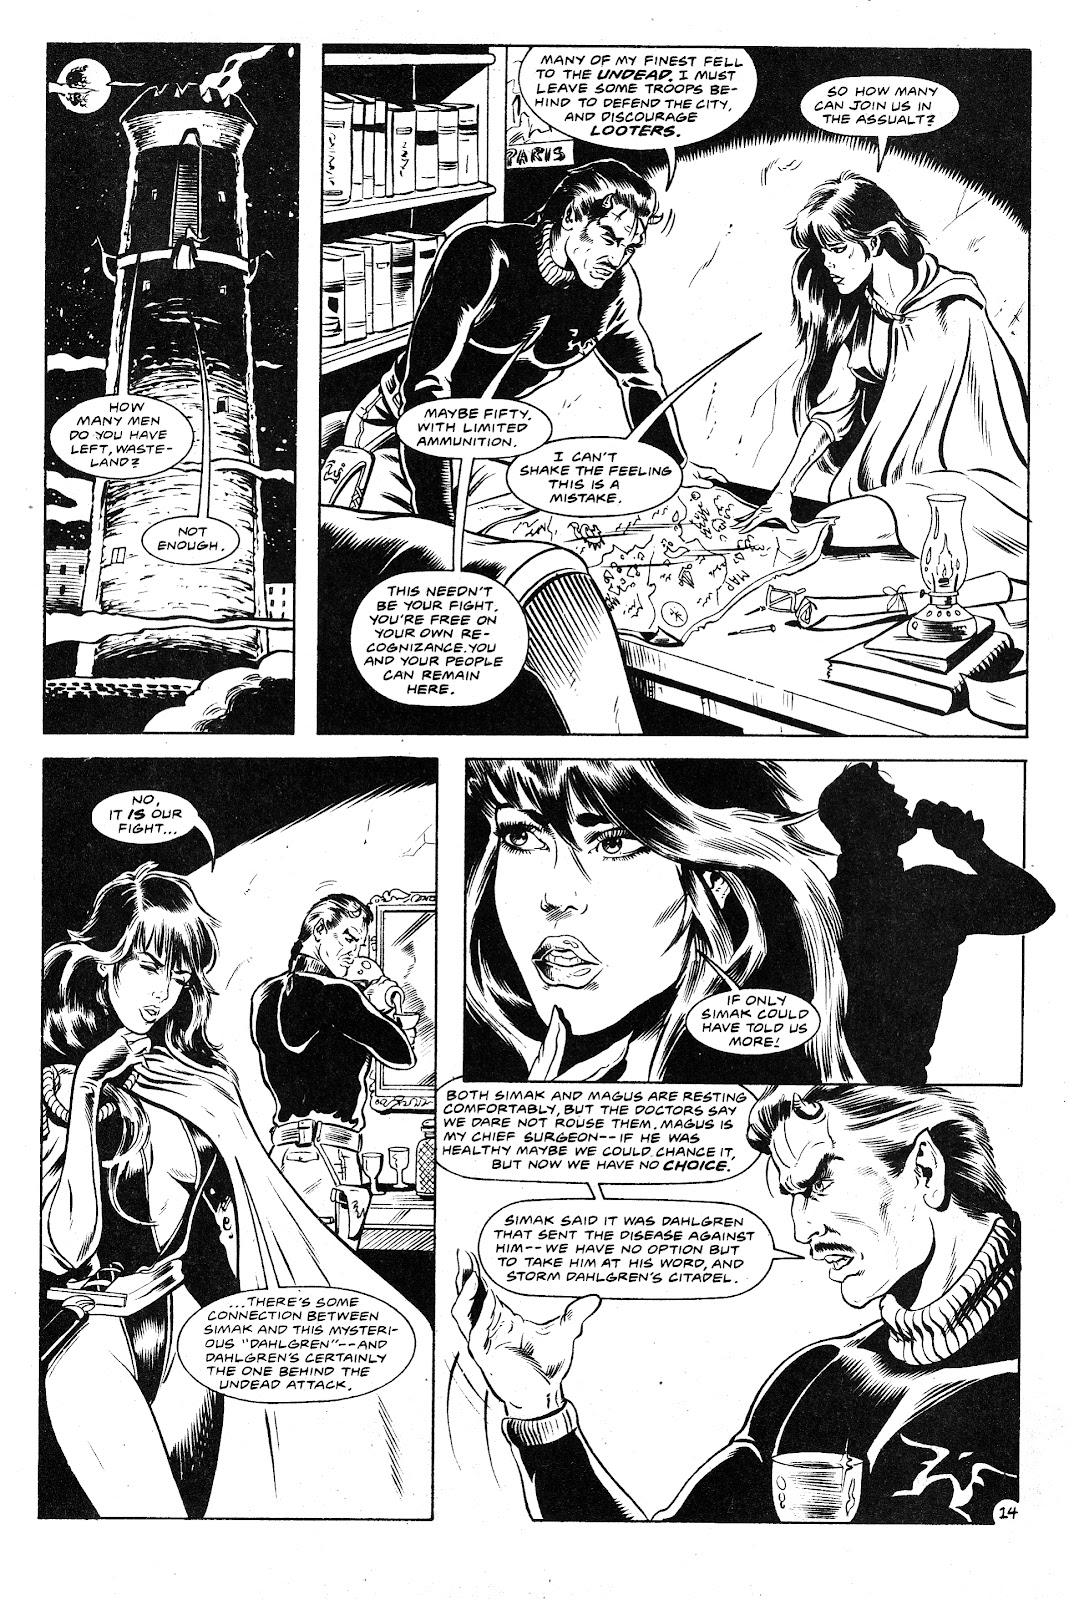 Ex-Mutants: The Shattered Earth Chronicles issue 9 - Page 16